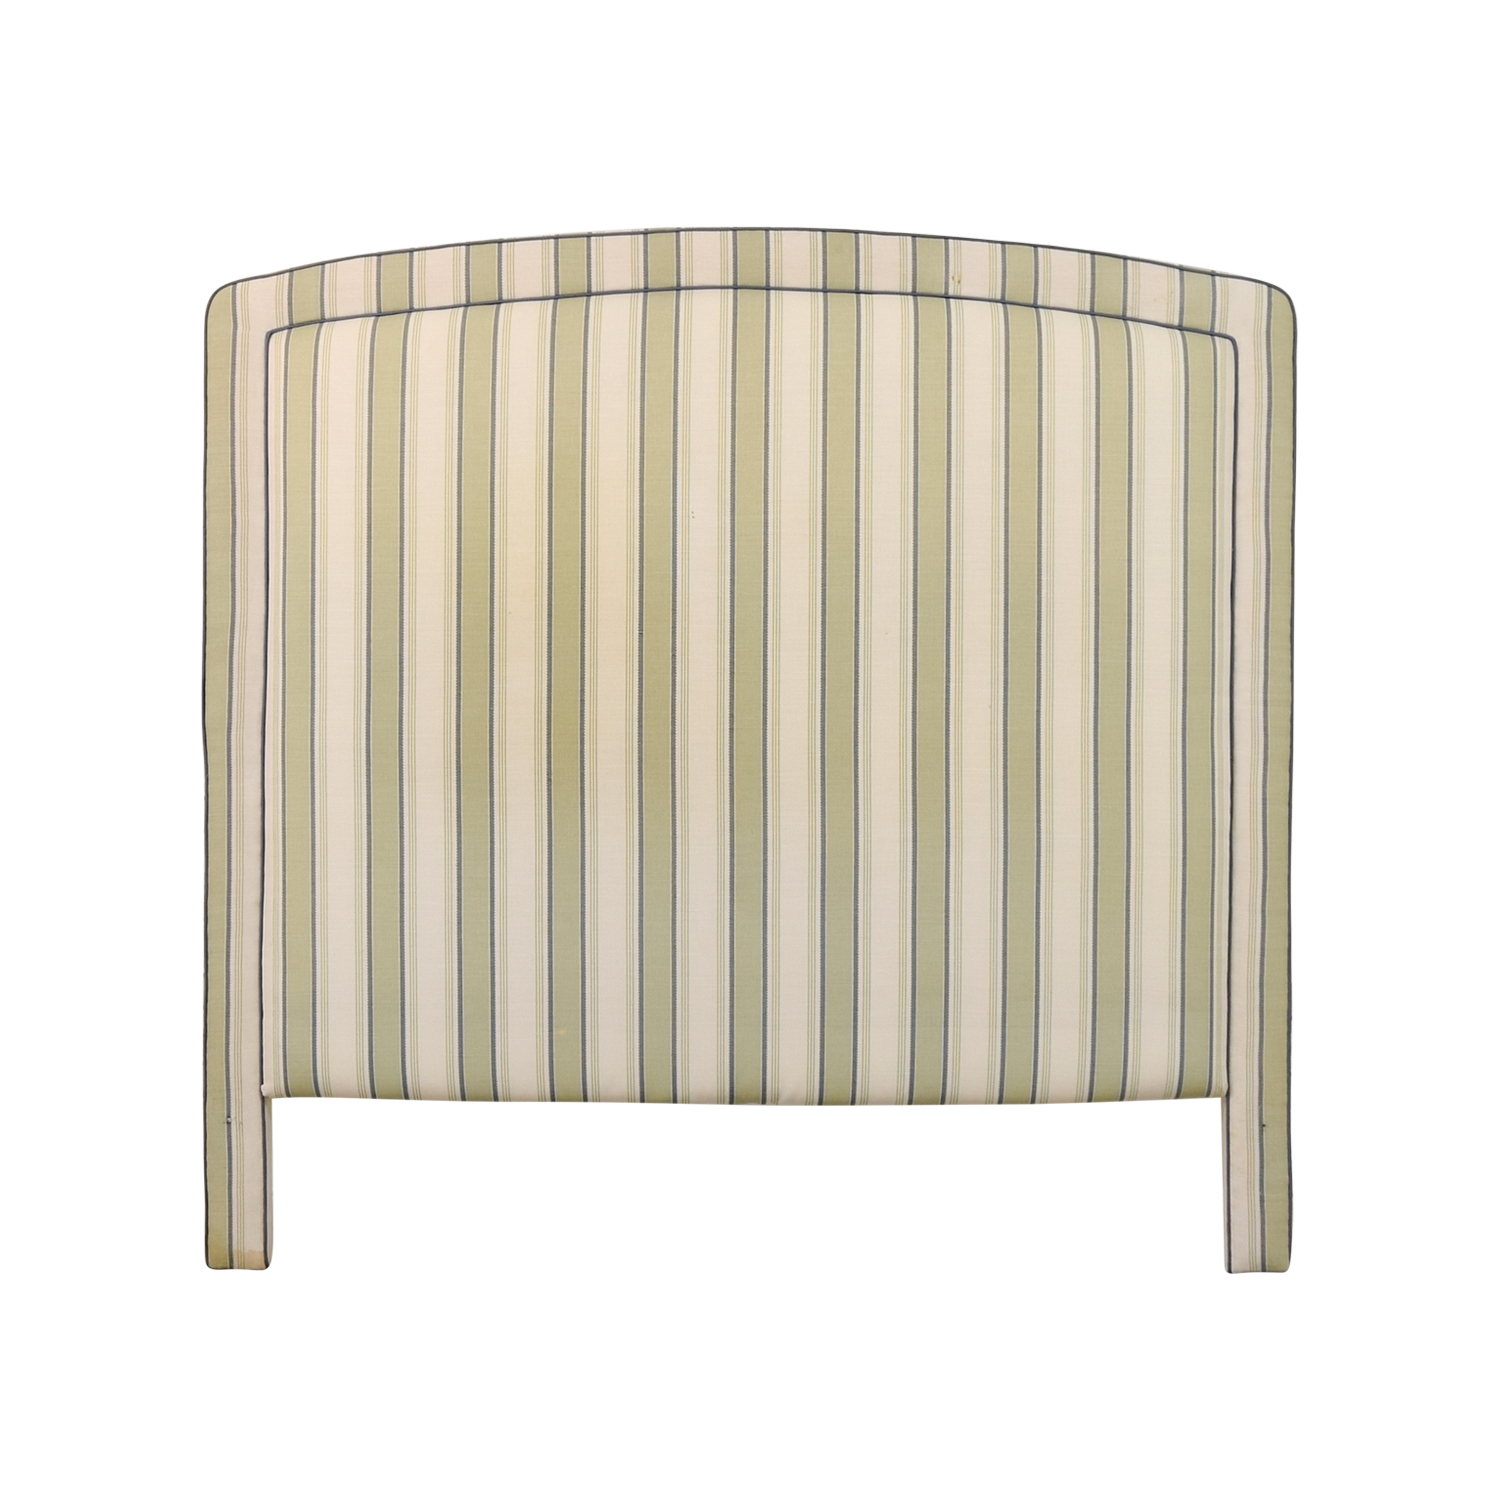 Custom Fabric Striped Queen Headboard for sale